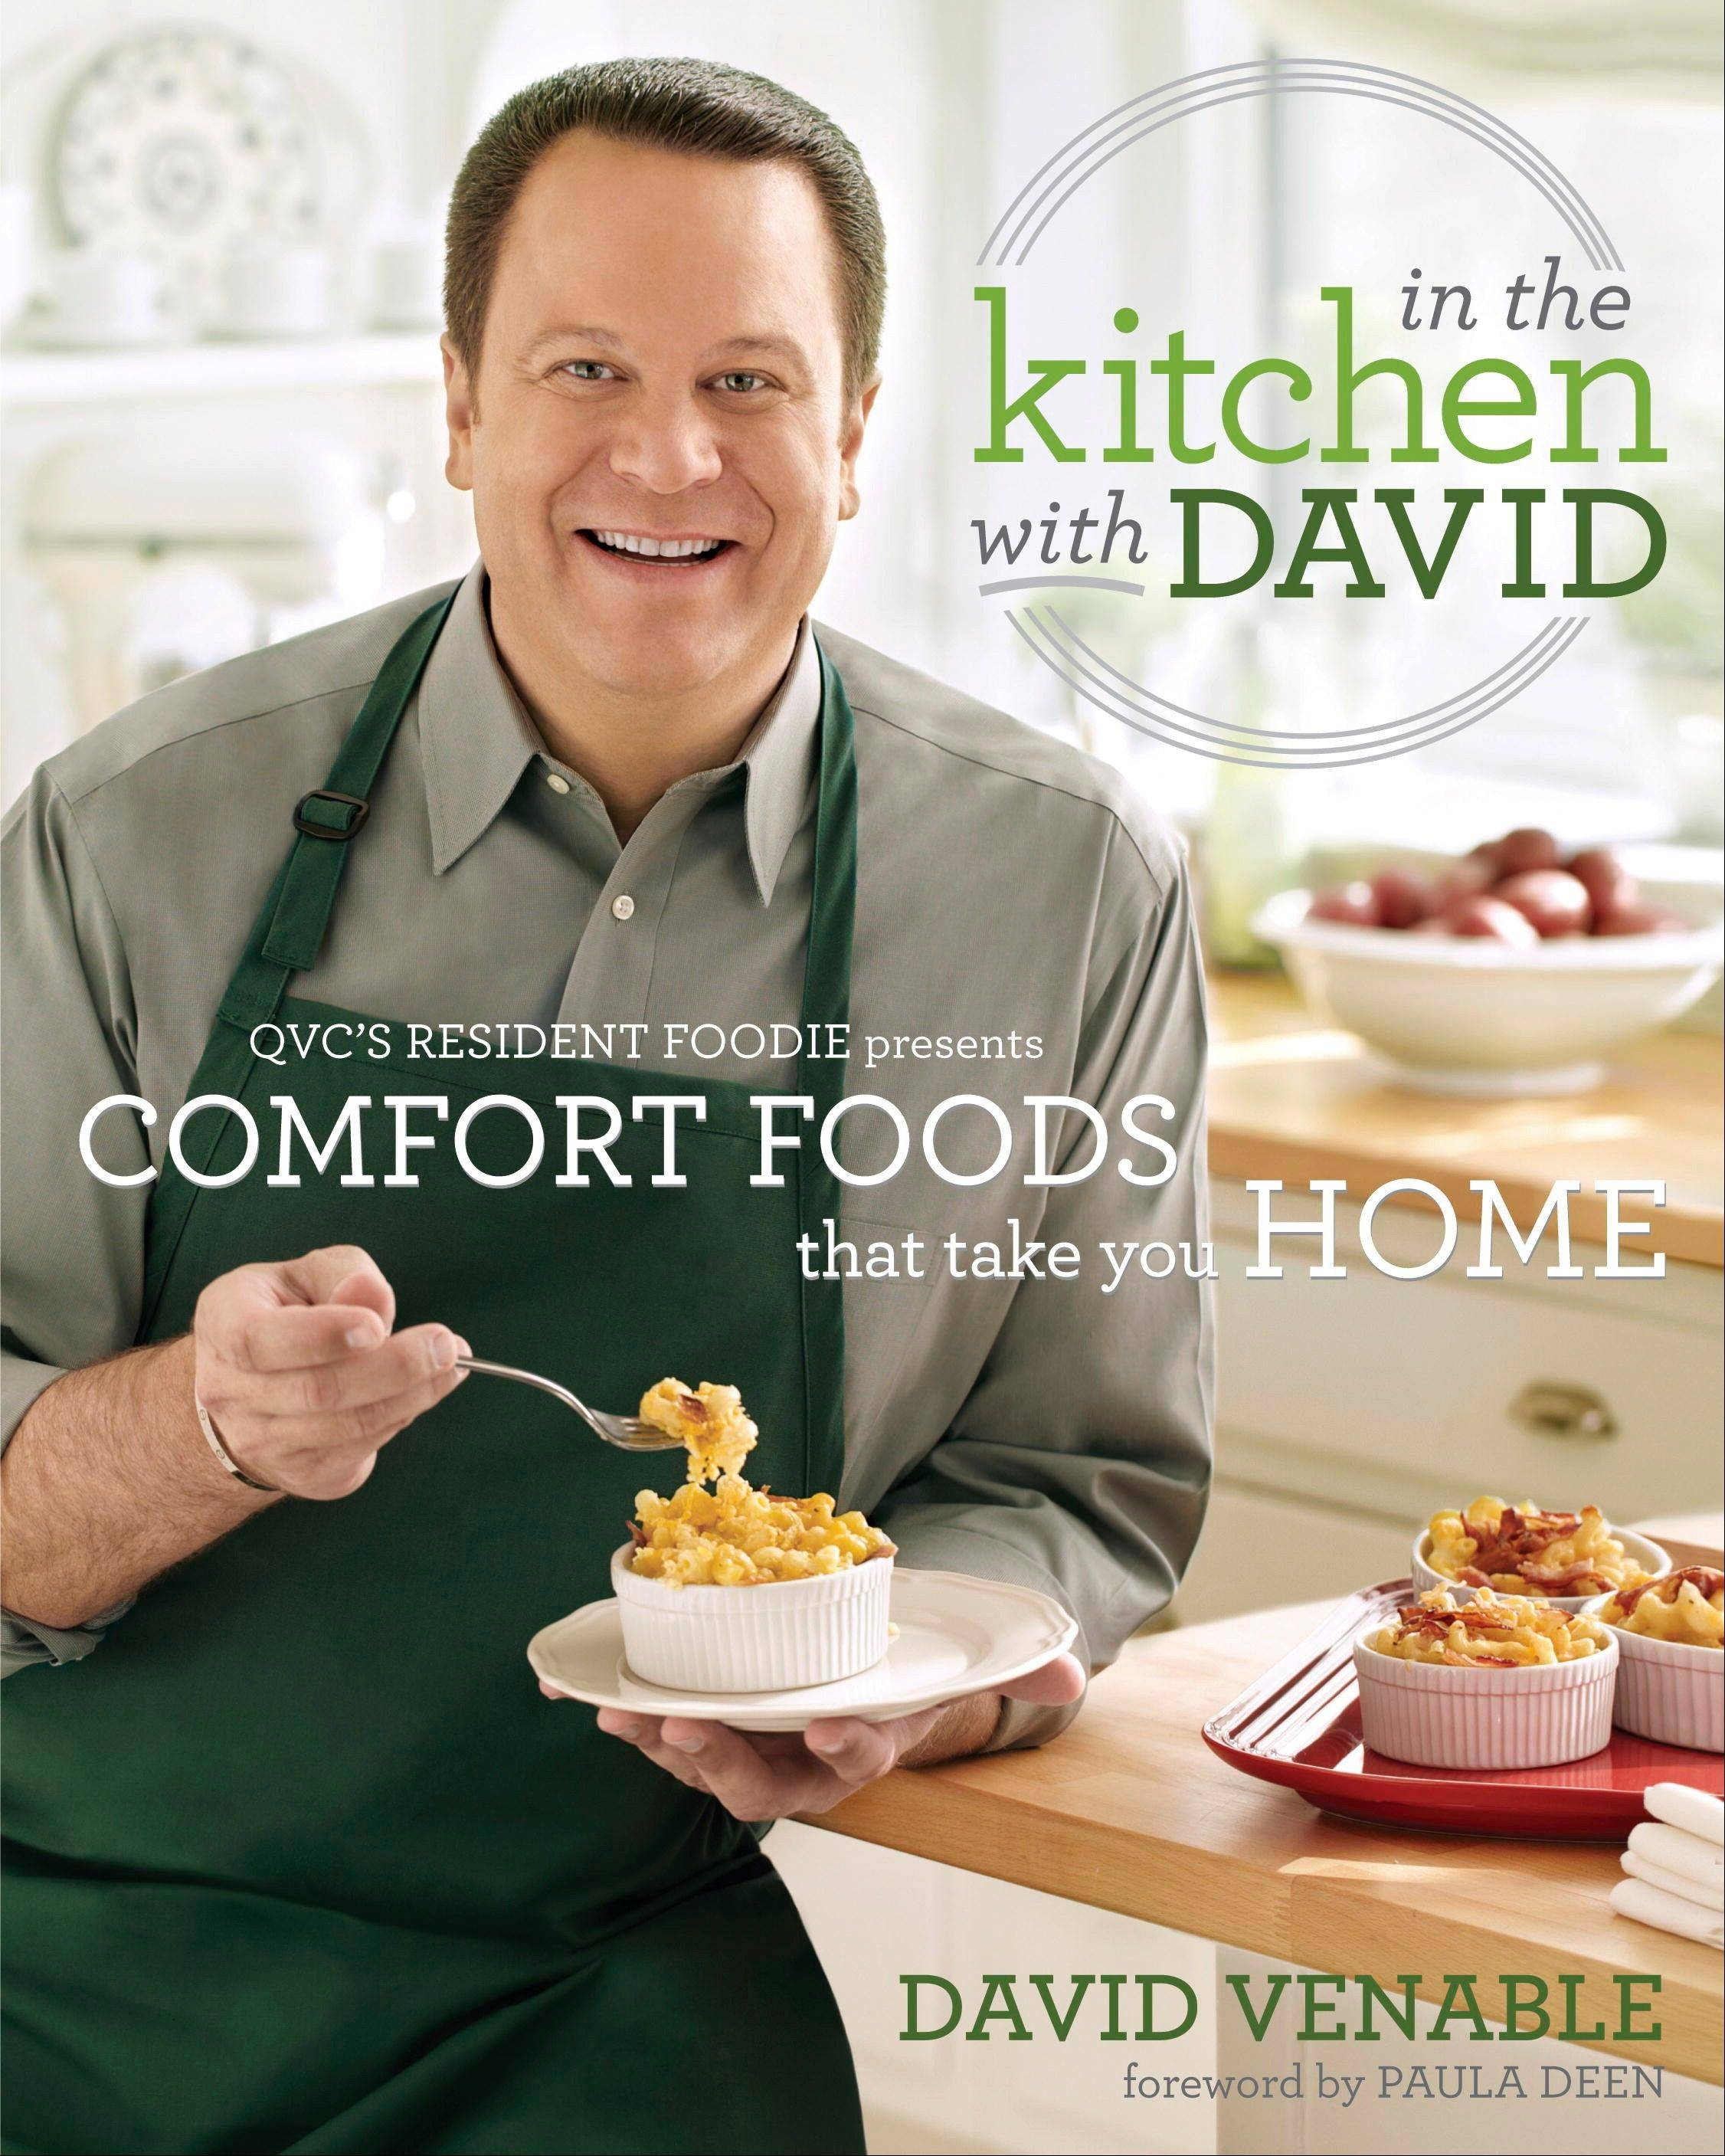 �In the Kitchen with David� by Dave Venable